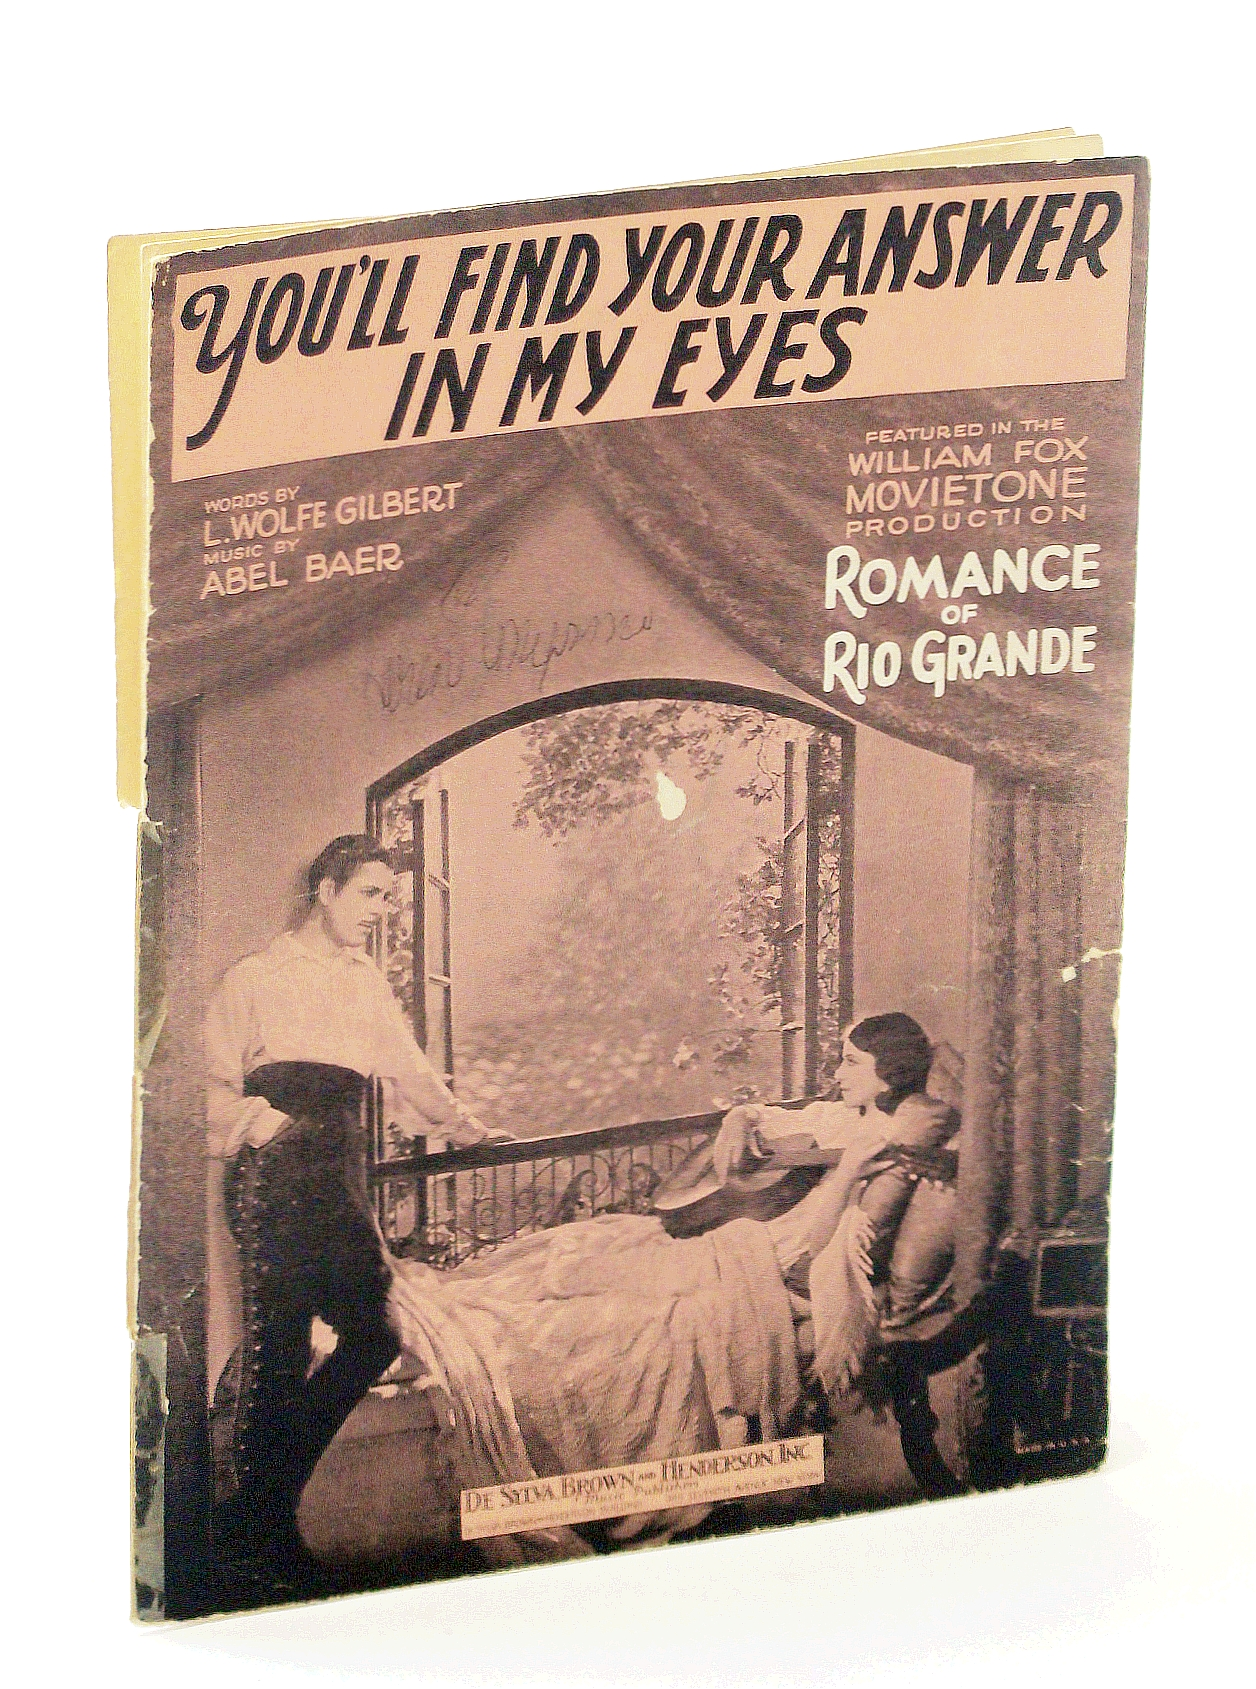 Image for You'll Find Your Answer In My Eyes Vintage 1929 Sheet Music from the movie Romance of Rio Grande